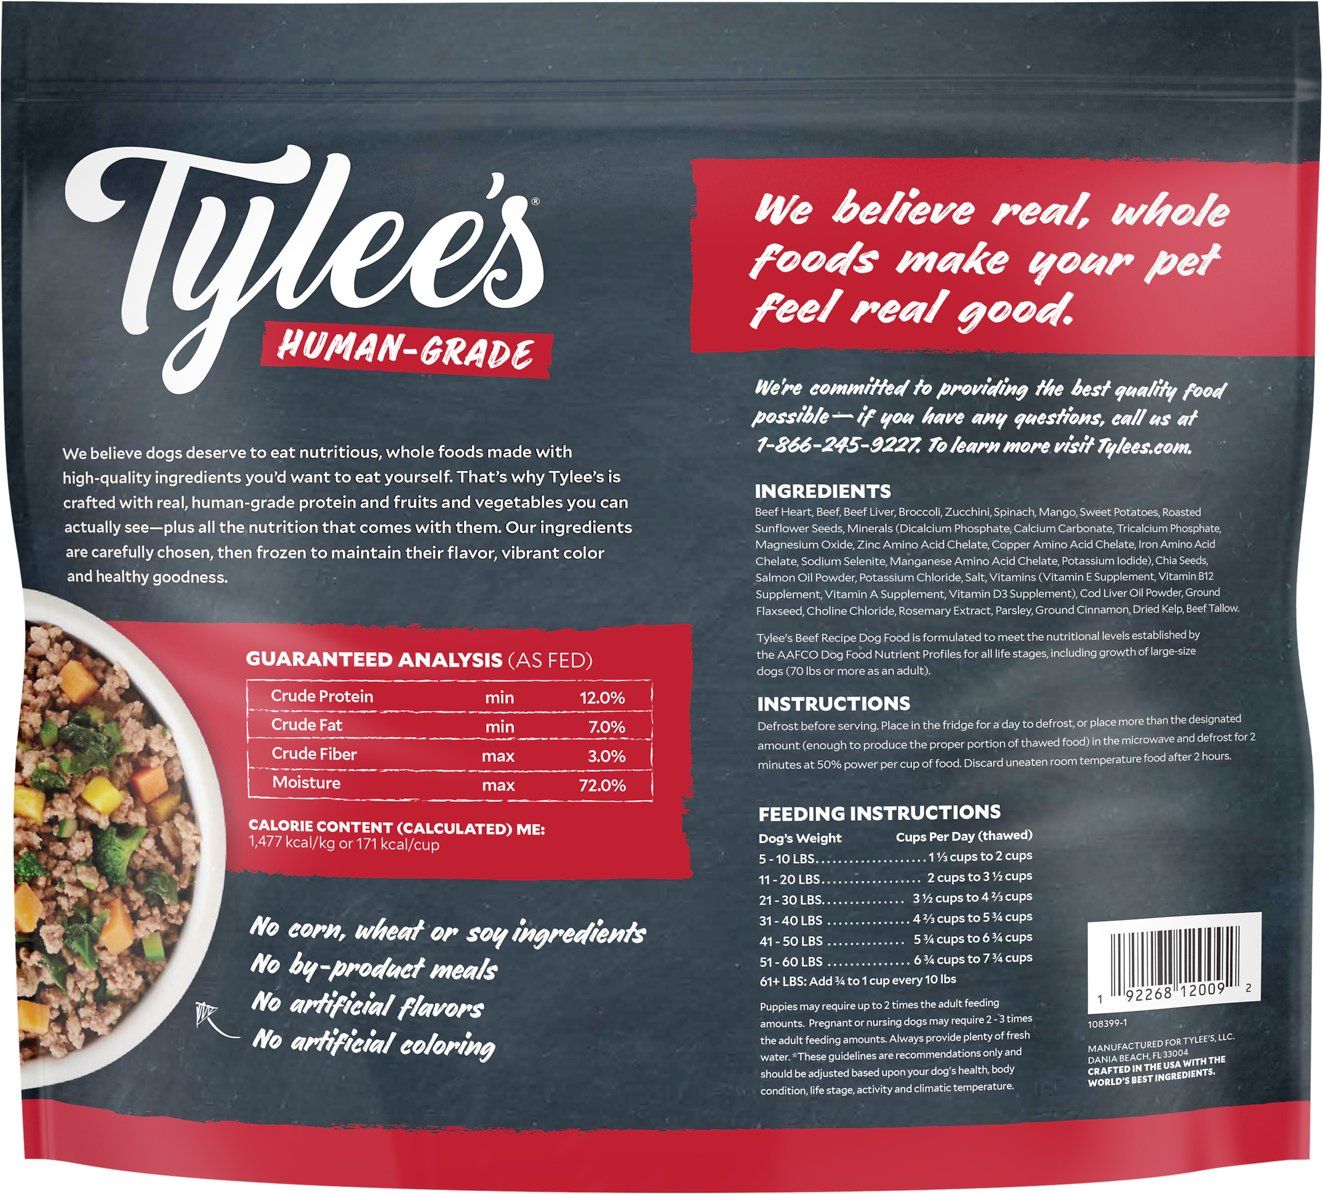 Tylee S Dog Food Reviews